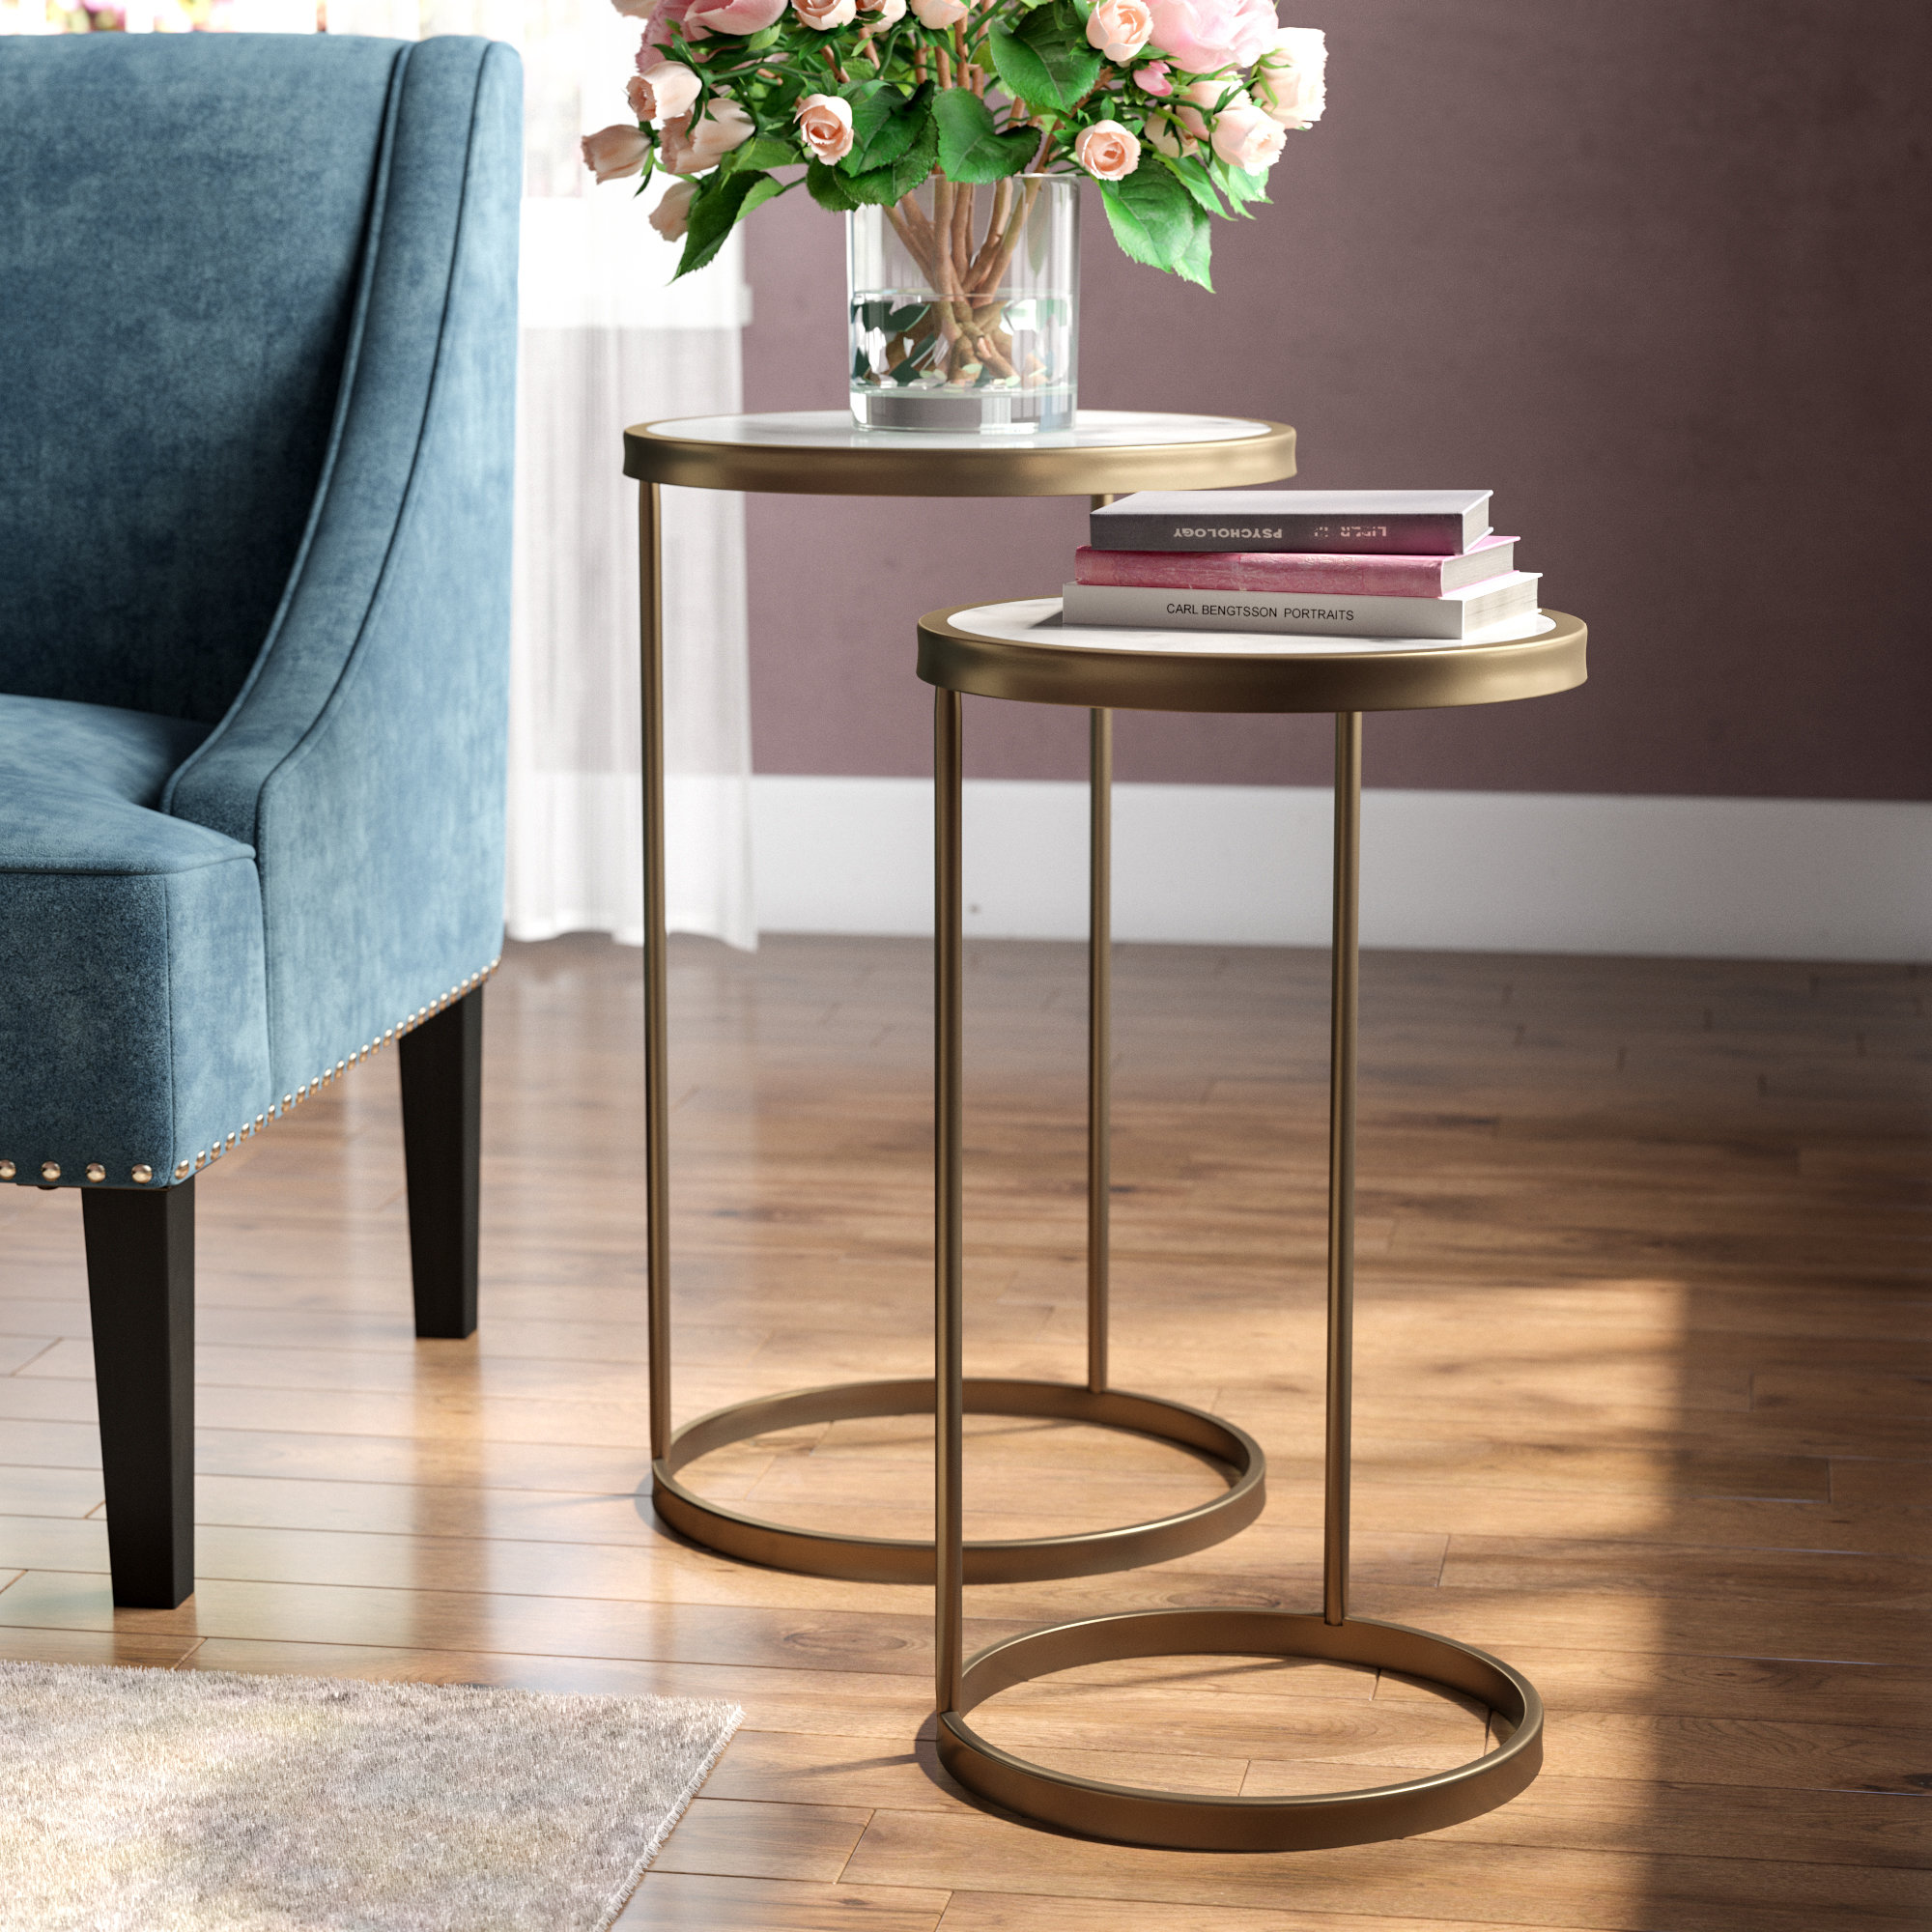 house hampton claybrooks nesting tables reviews room essentials stacking accent table target clocks small metal garden square wood coffee black glass side low round ikea large